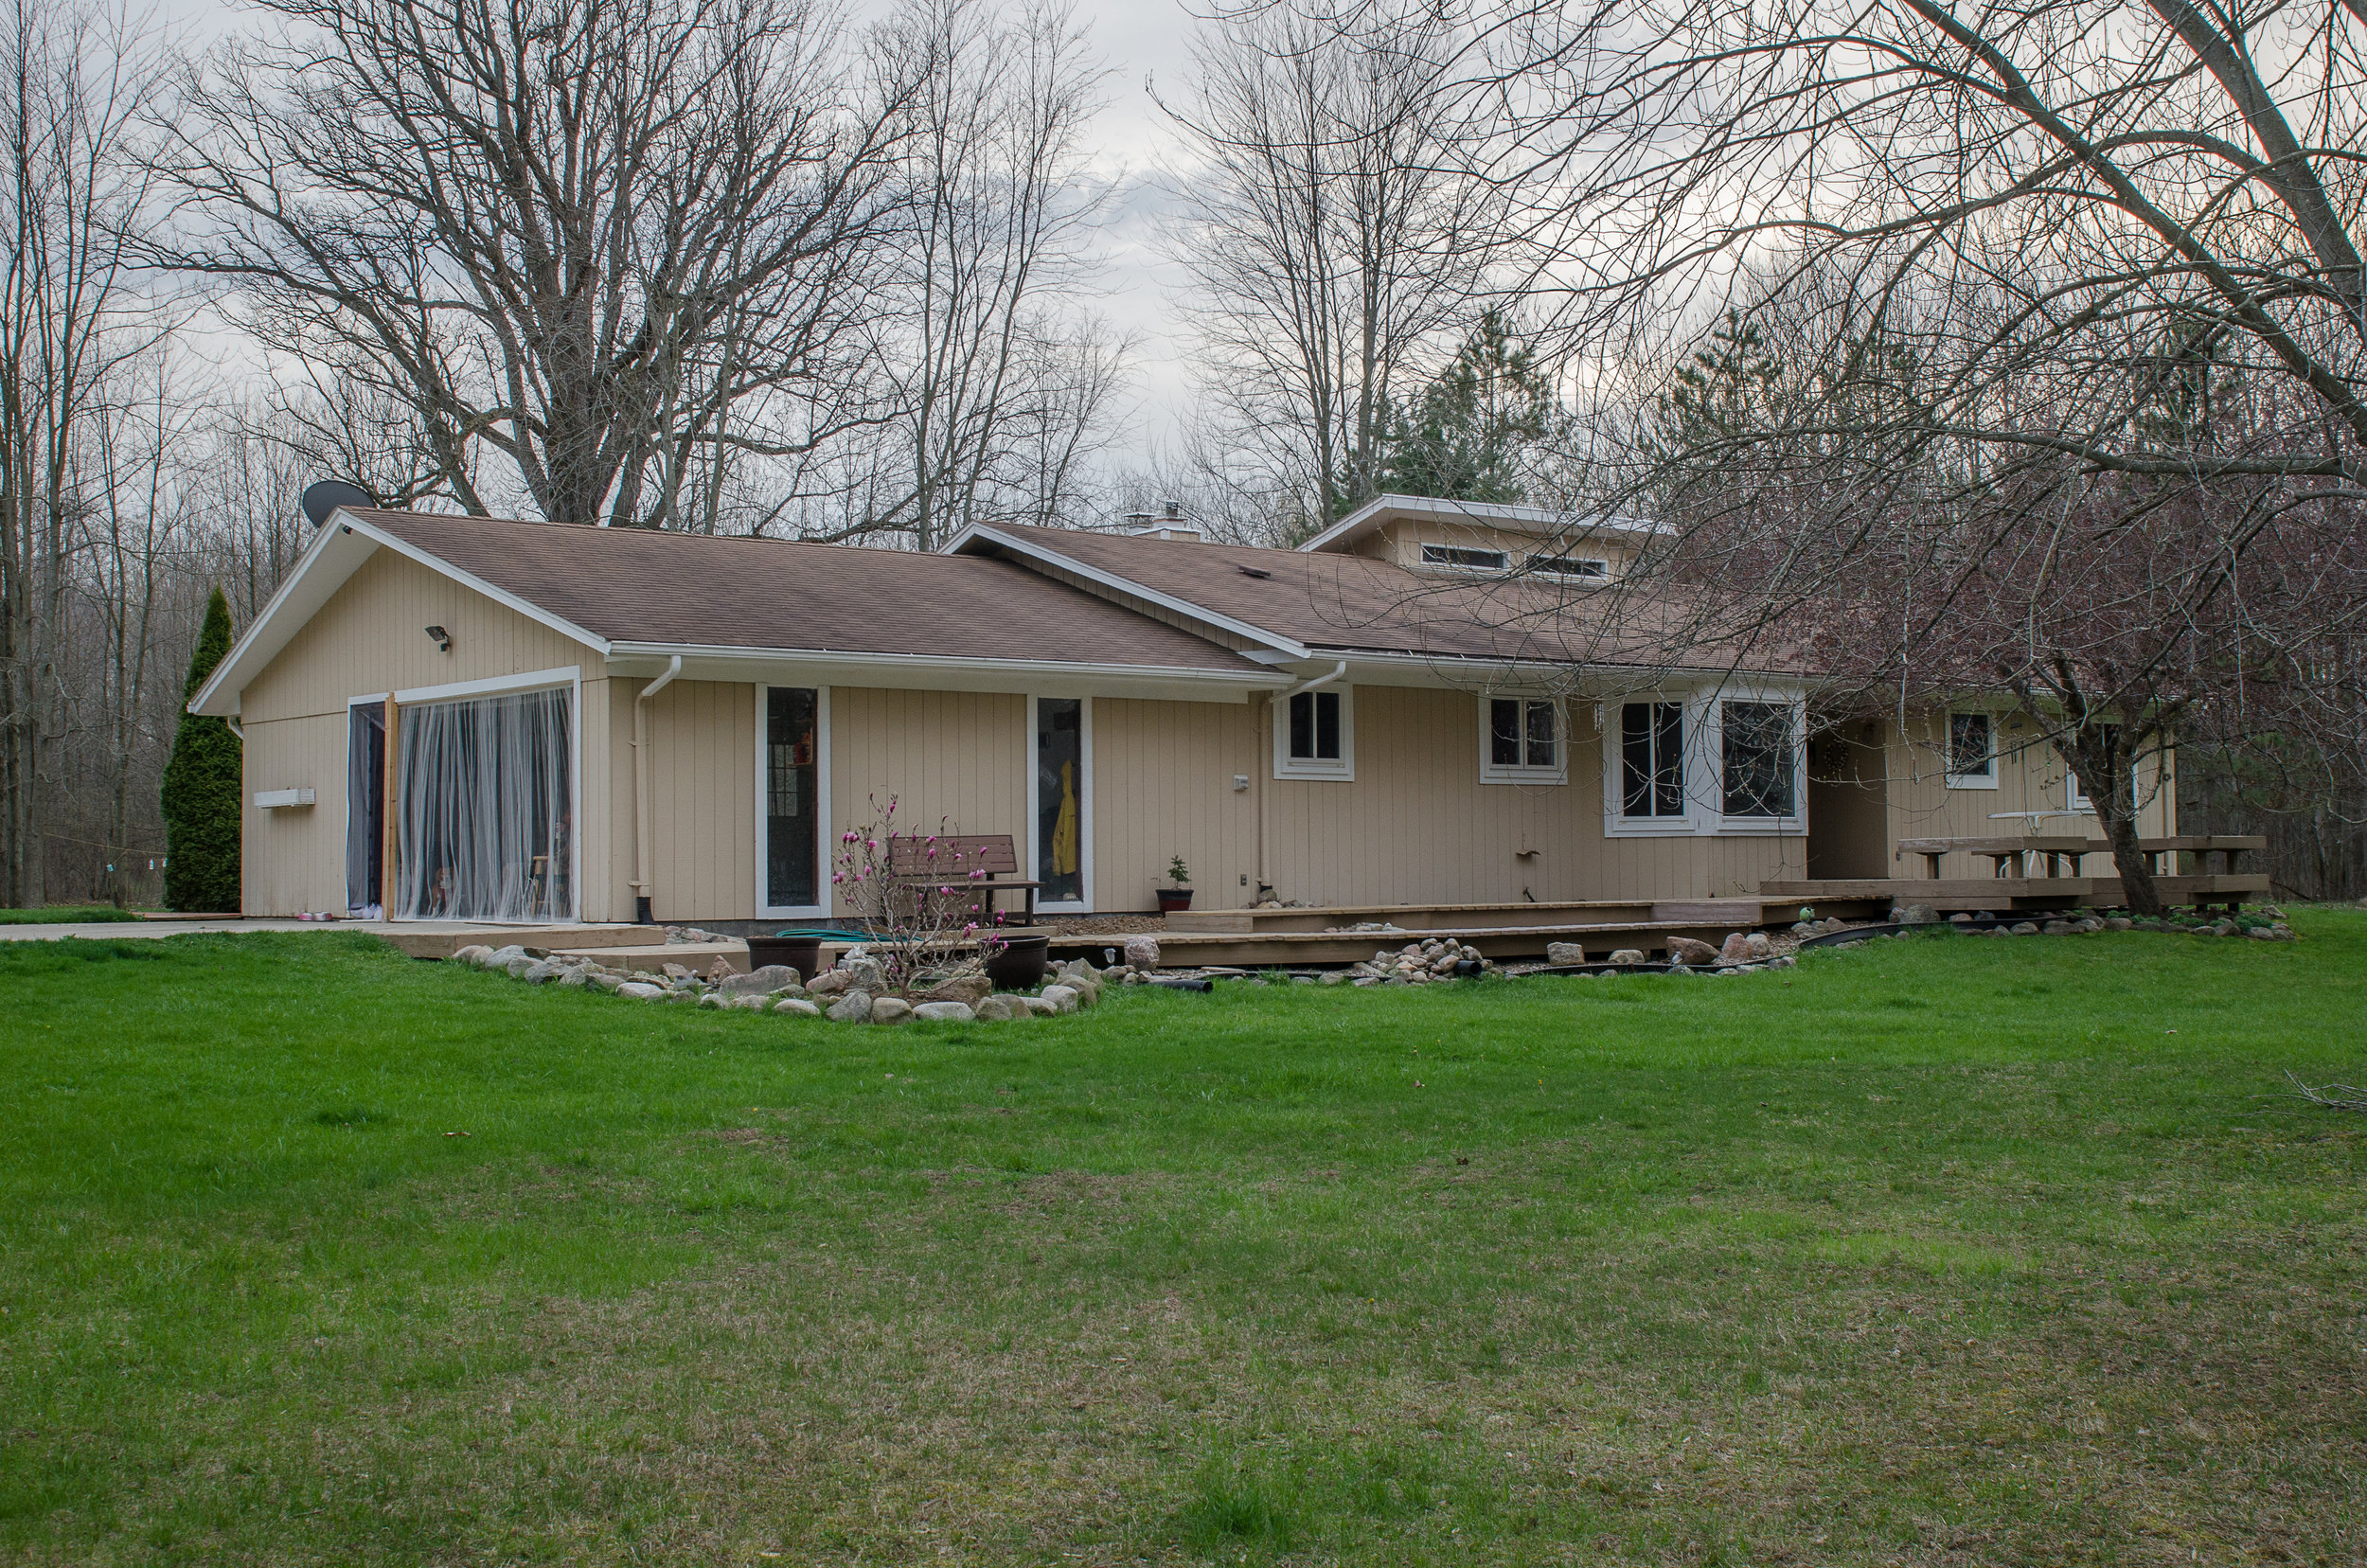 Cinnamon Ridge- Howell - $245,000   DOM 1 / Sold for $15,000 over asking price / 2 Showings